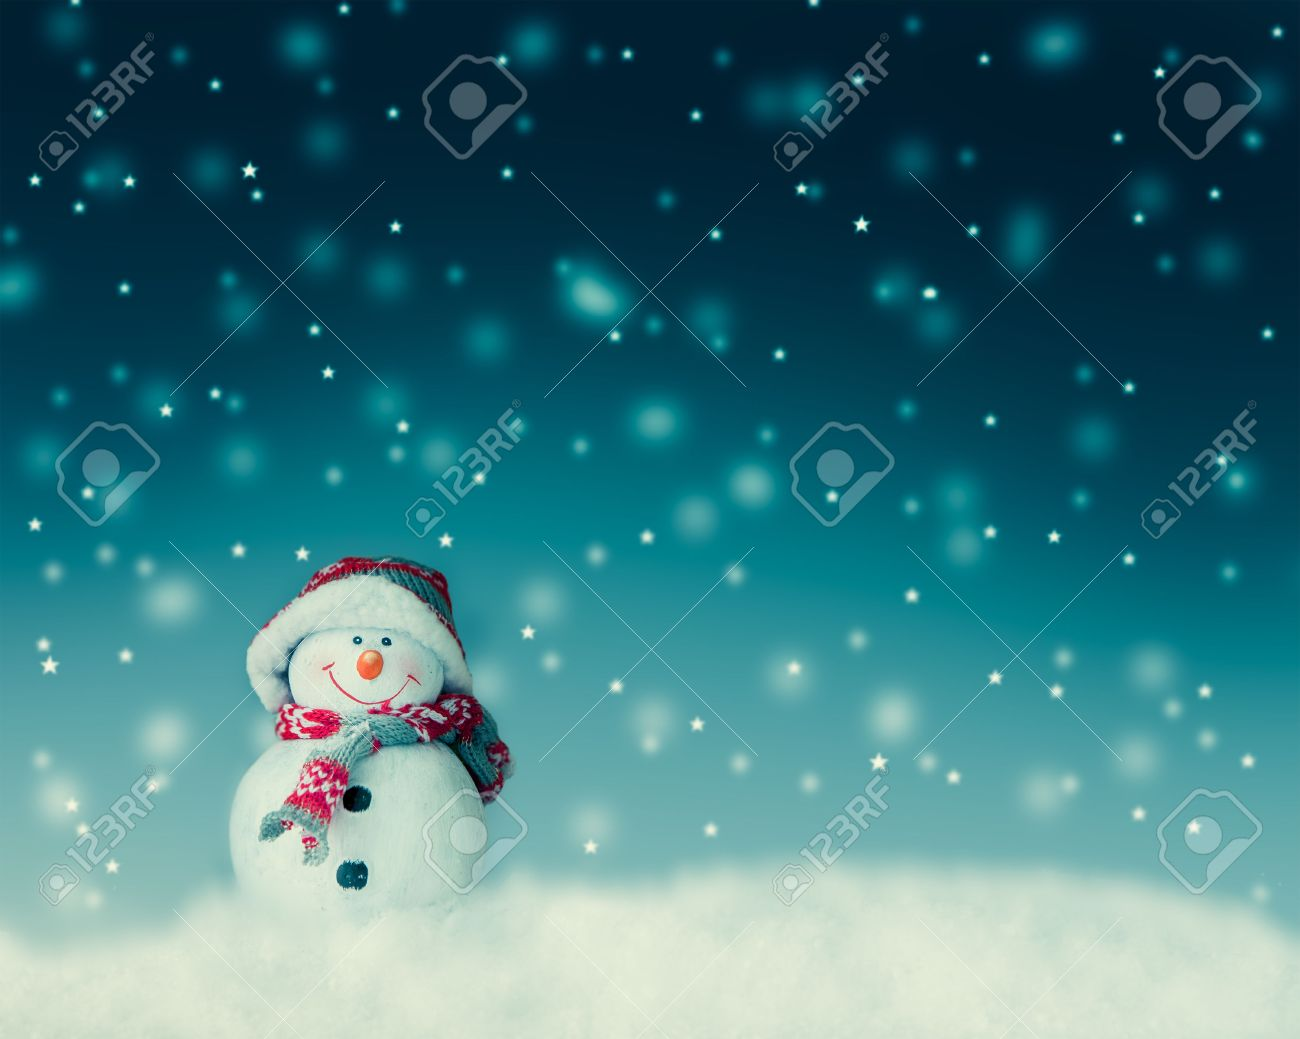 snowman for card or background - 46287279